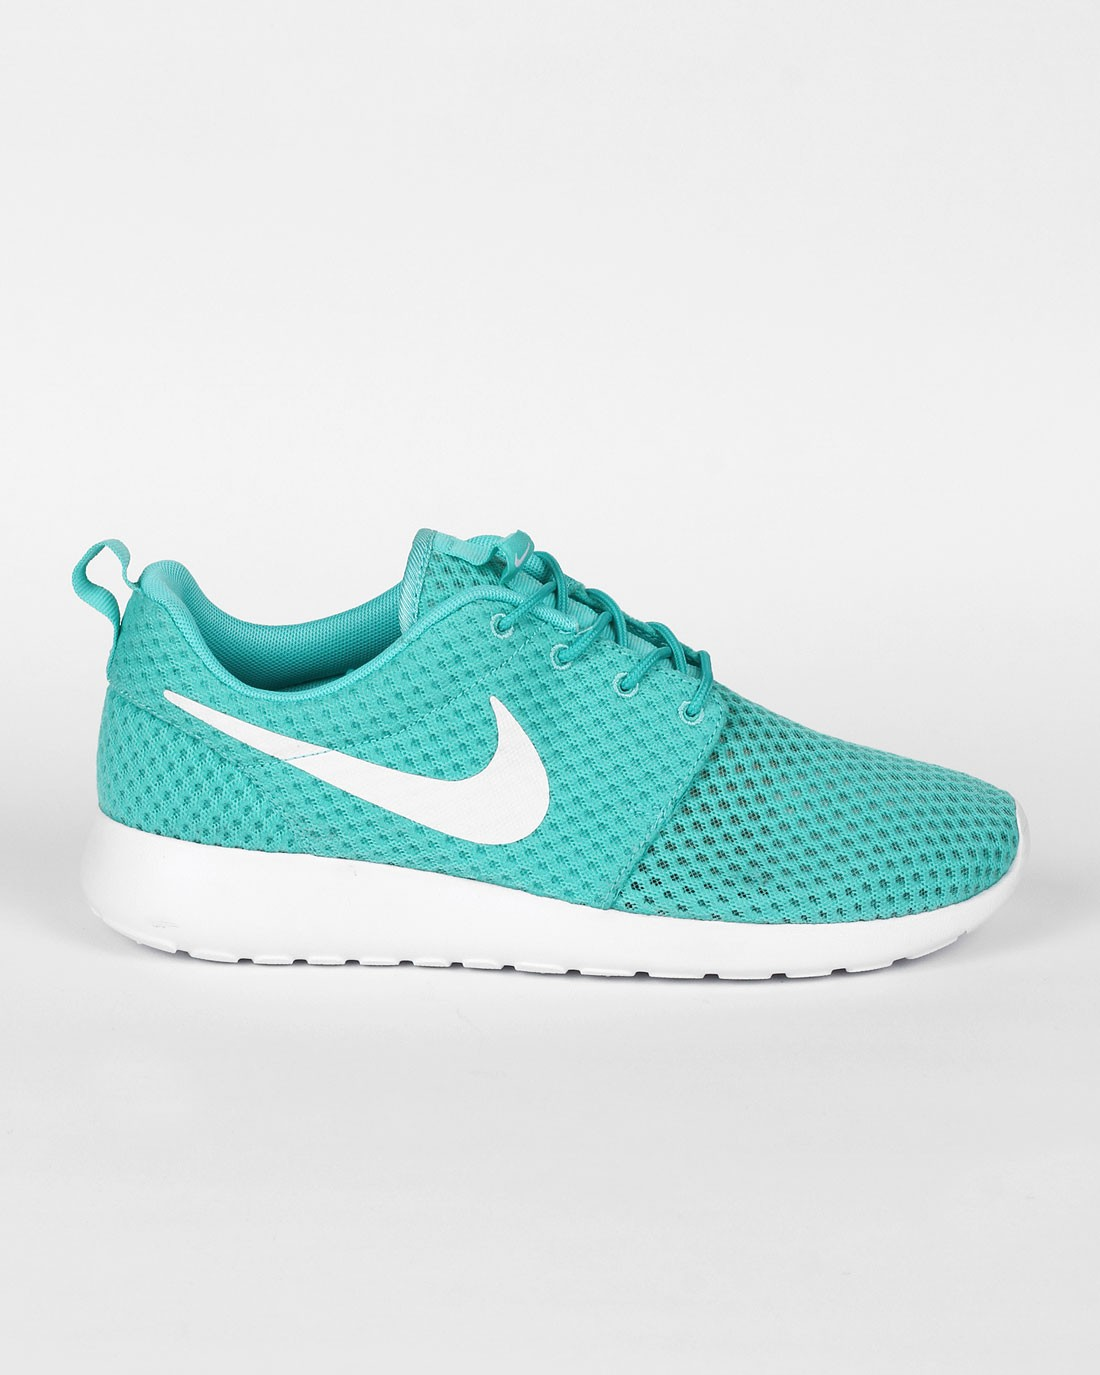 hot sale online c46fd 7cf07 Nike Roshe One BR (Breeze) Calypso Chaussures Pour Femme Blanche Bleu-Vert  718552 ...